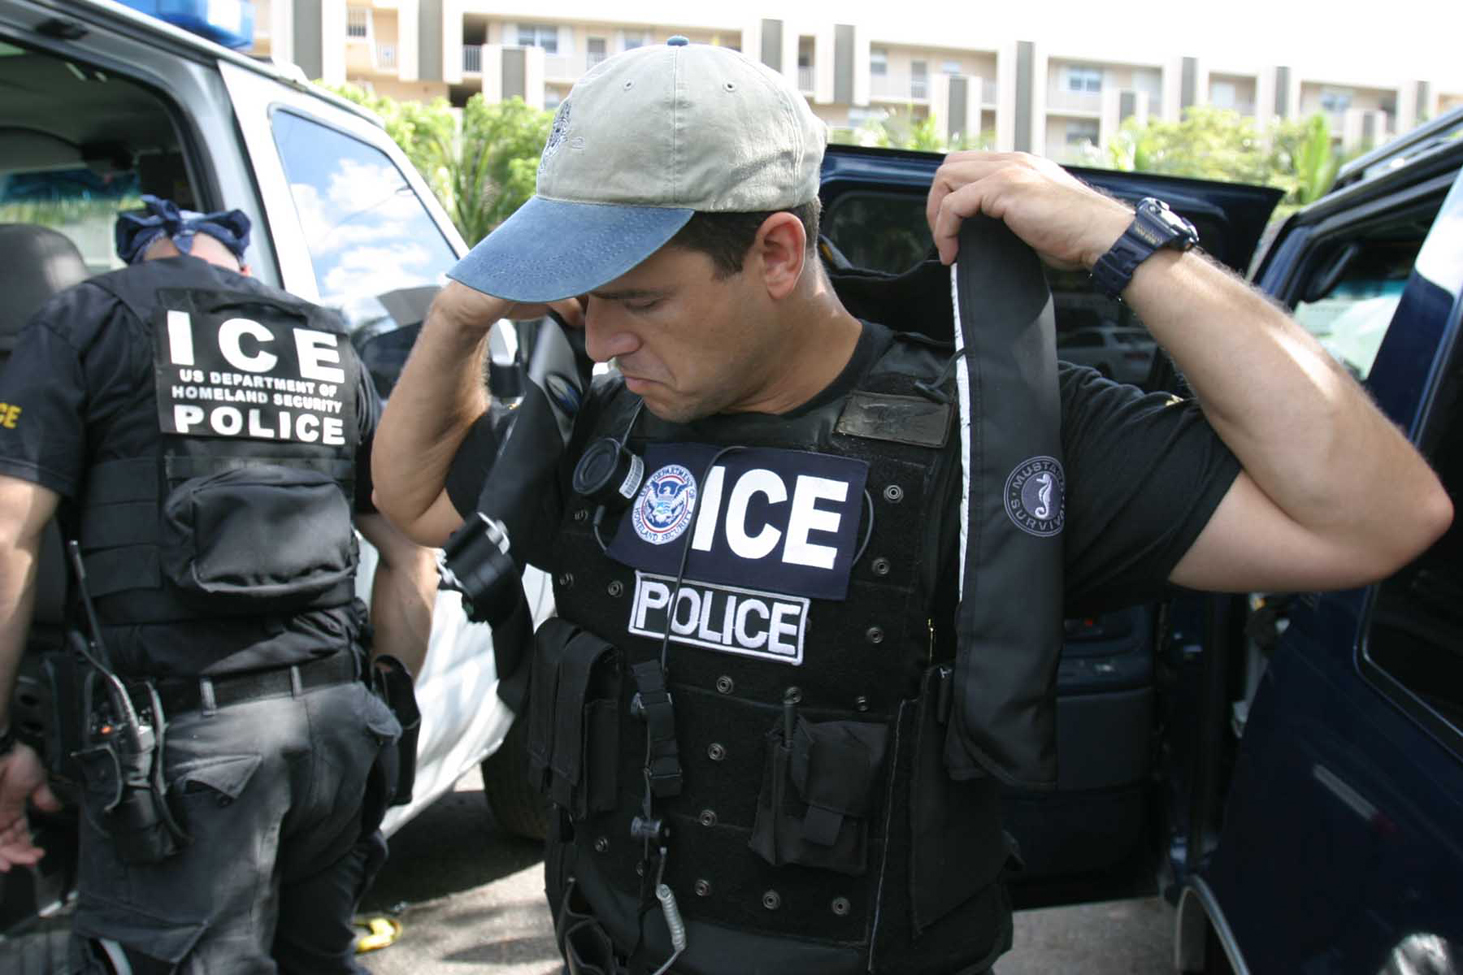 Many Massachusetts sheriff departments, including the one in Suffolk County, have contracts with ICE allowing them to house undocumented immigrants in local jails during the deportation process, even if no crimes have been committed.